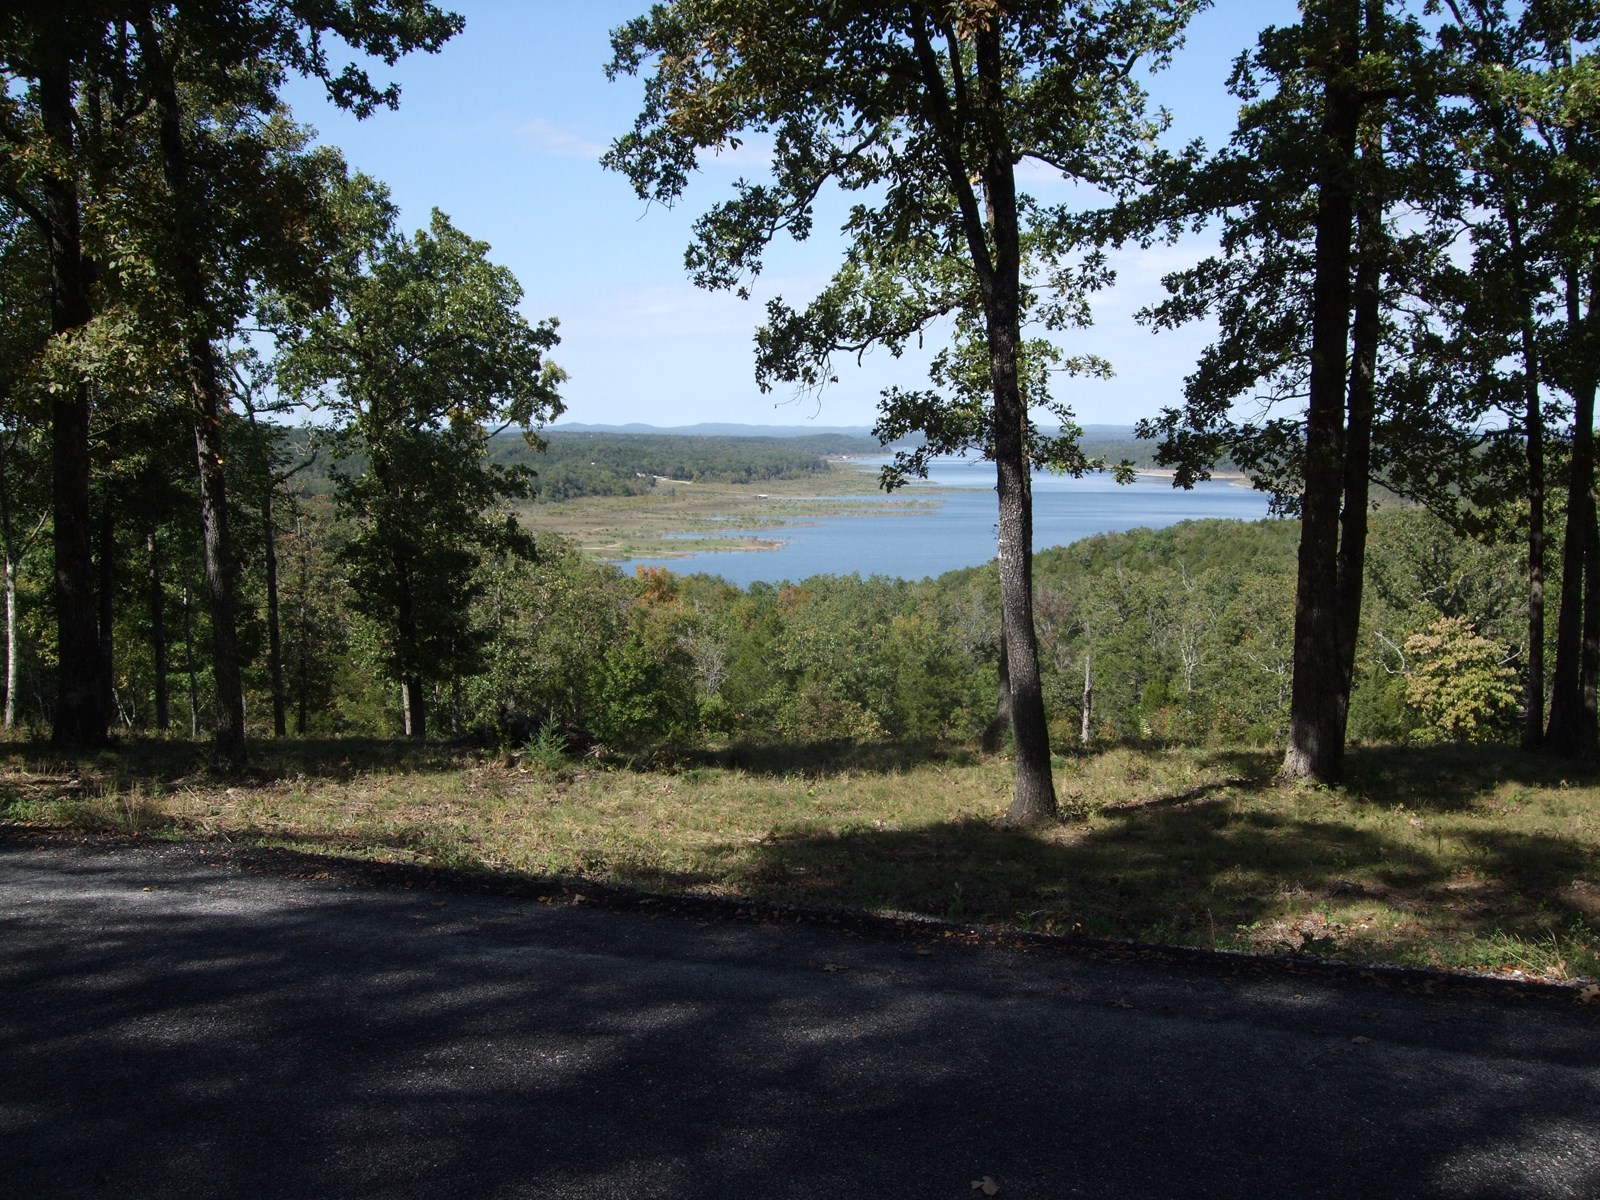 BEAUTIFUL LAKE VIEWS OF LAKE BULL SHOALS!